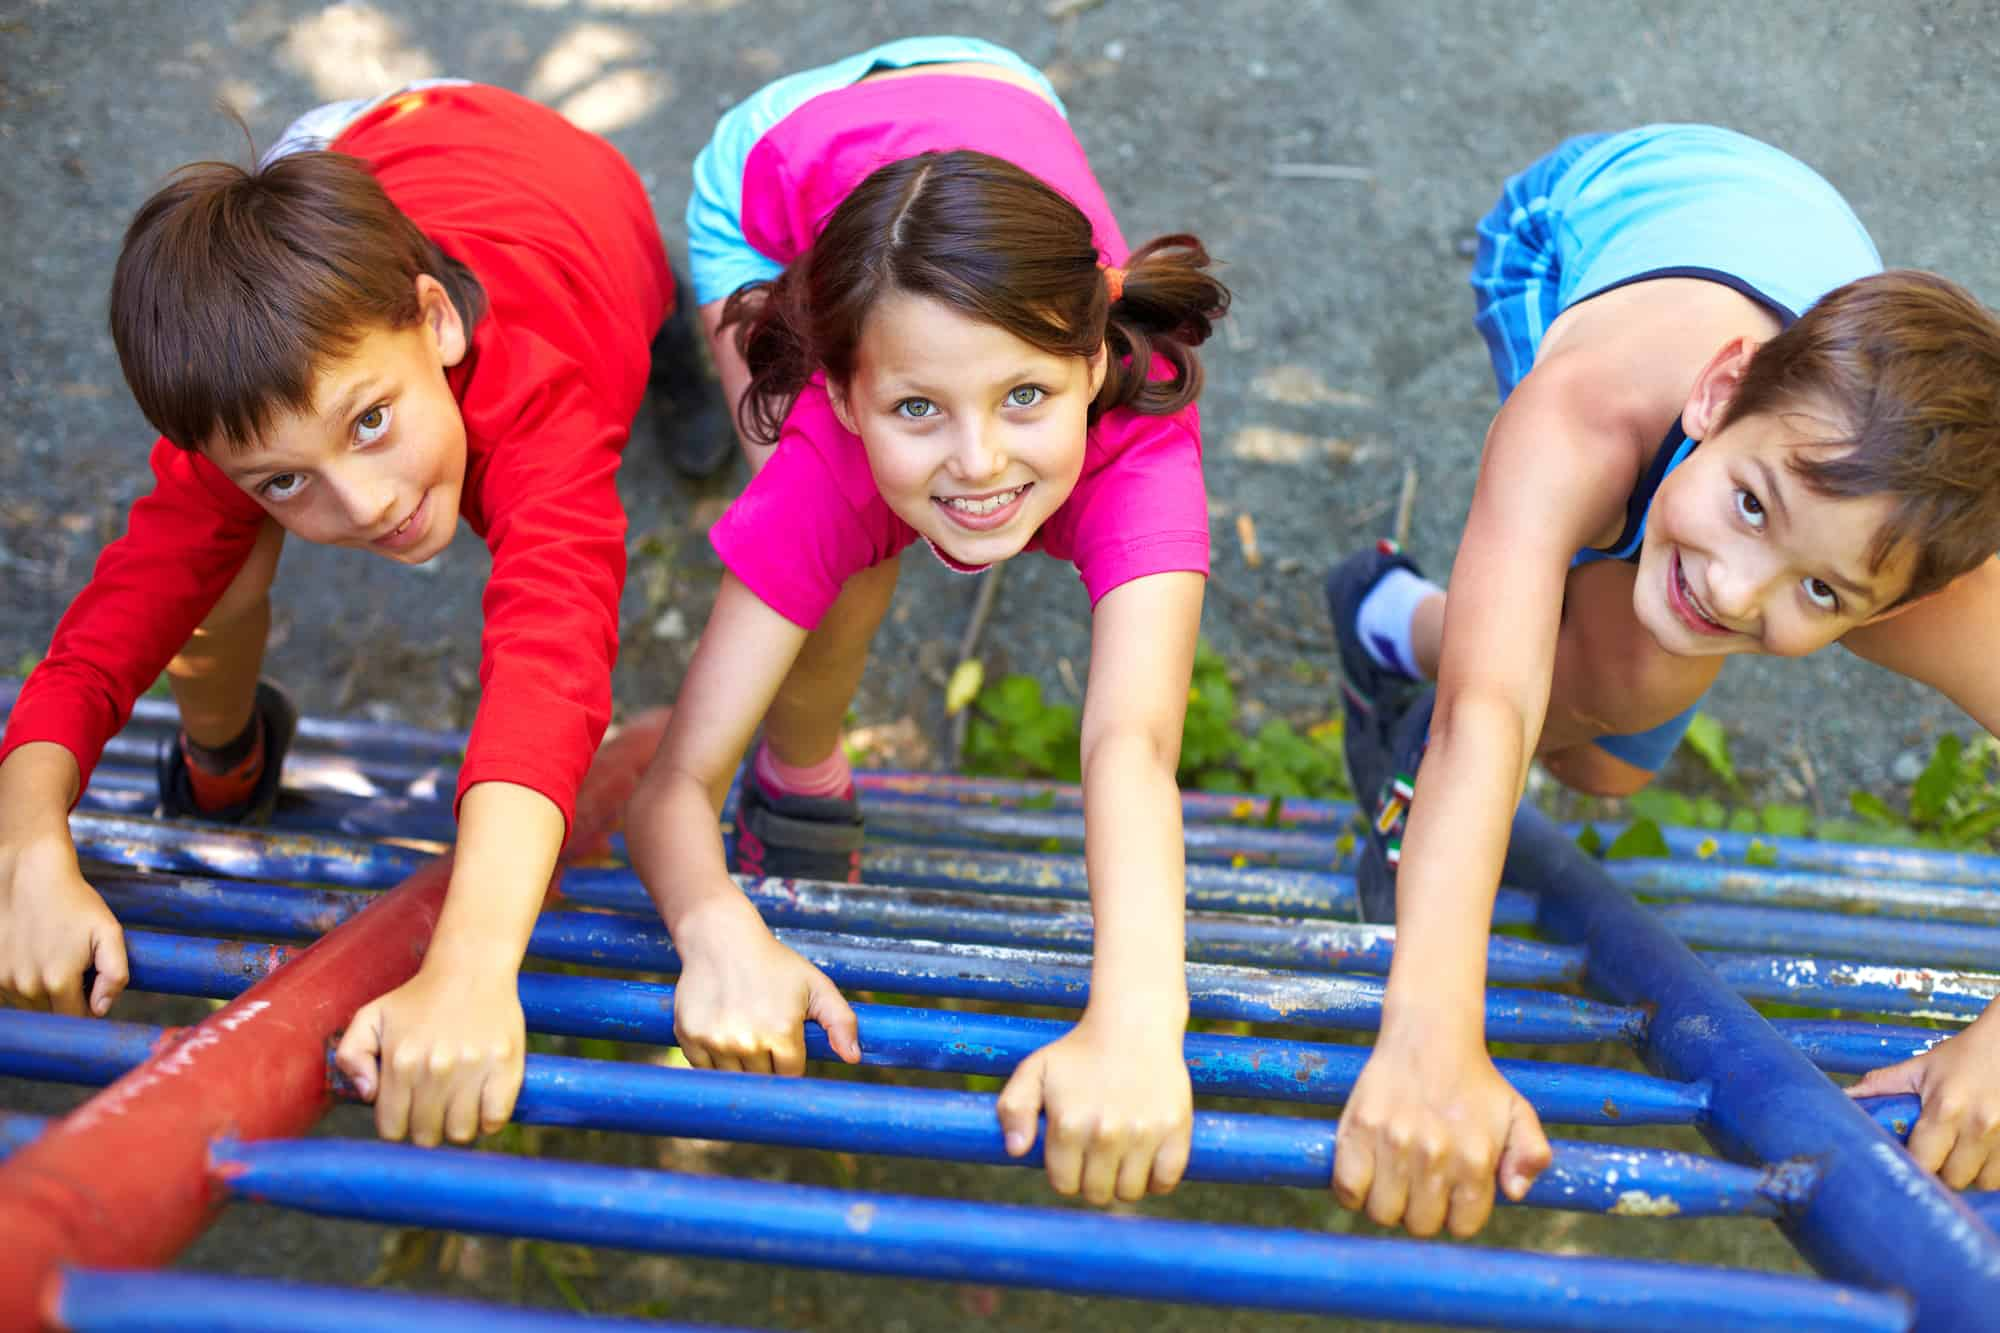 Three kids climbing a ladder at a playground